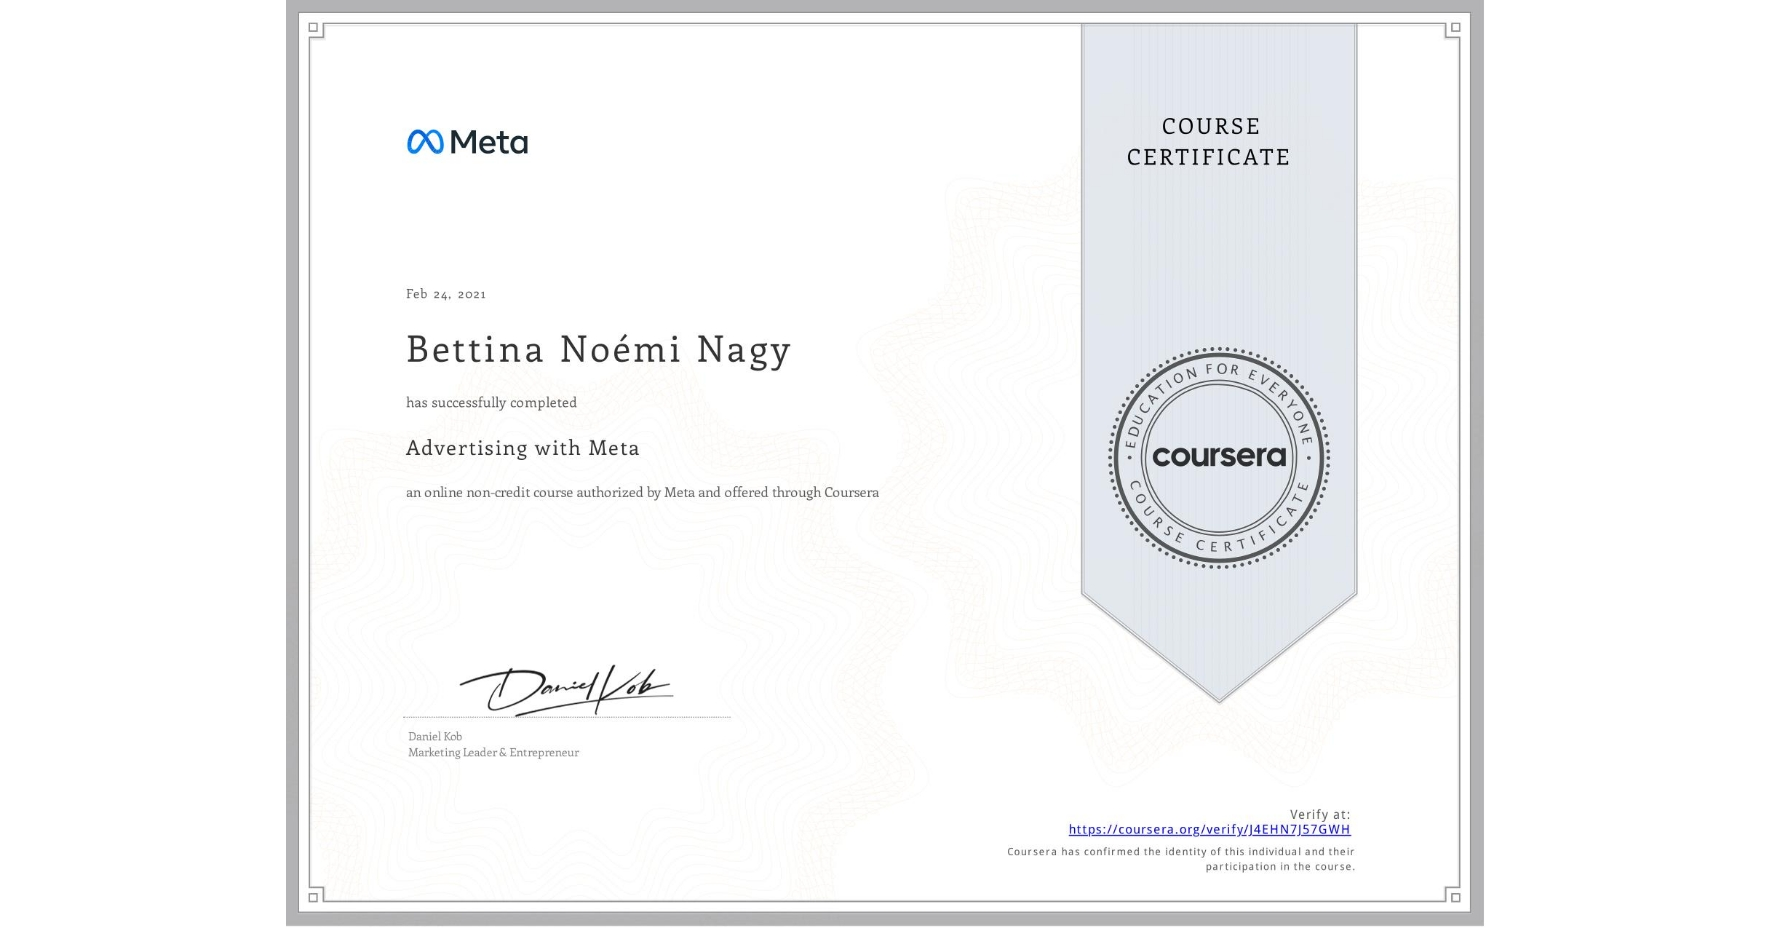 View certificate for Bettina Noémi Nagy, Advertising with Facebook, an online non-credit course authorized by Facebook and offered through Coursera